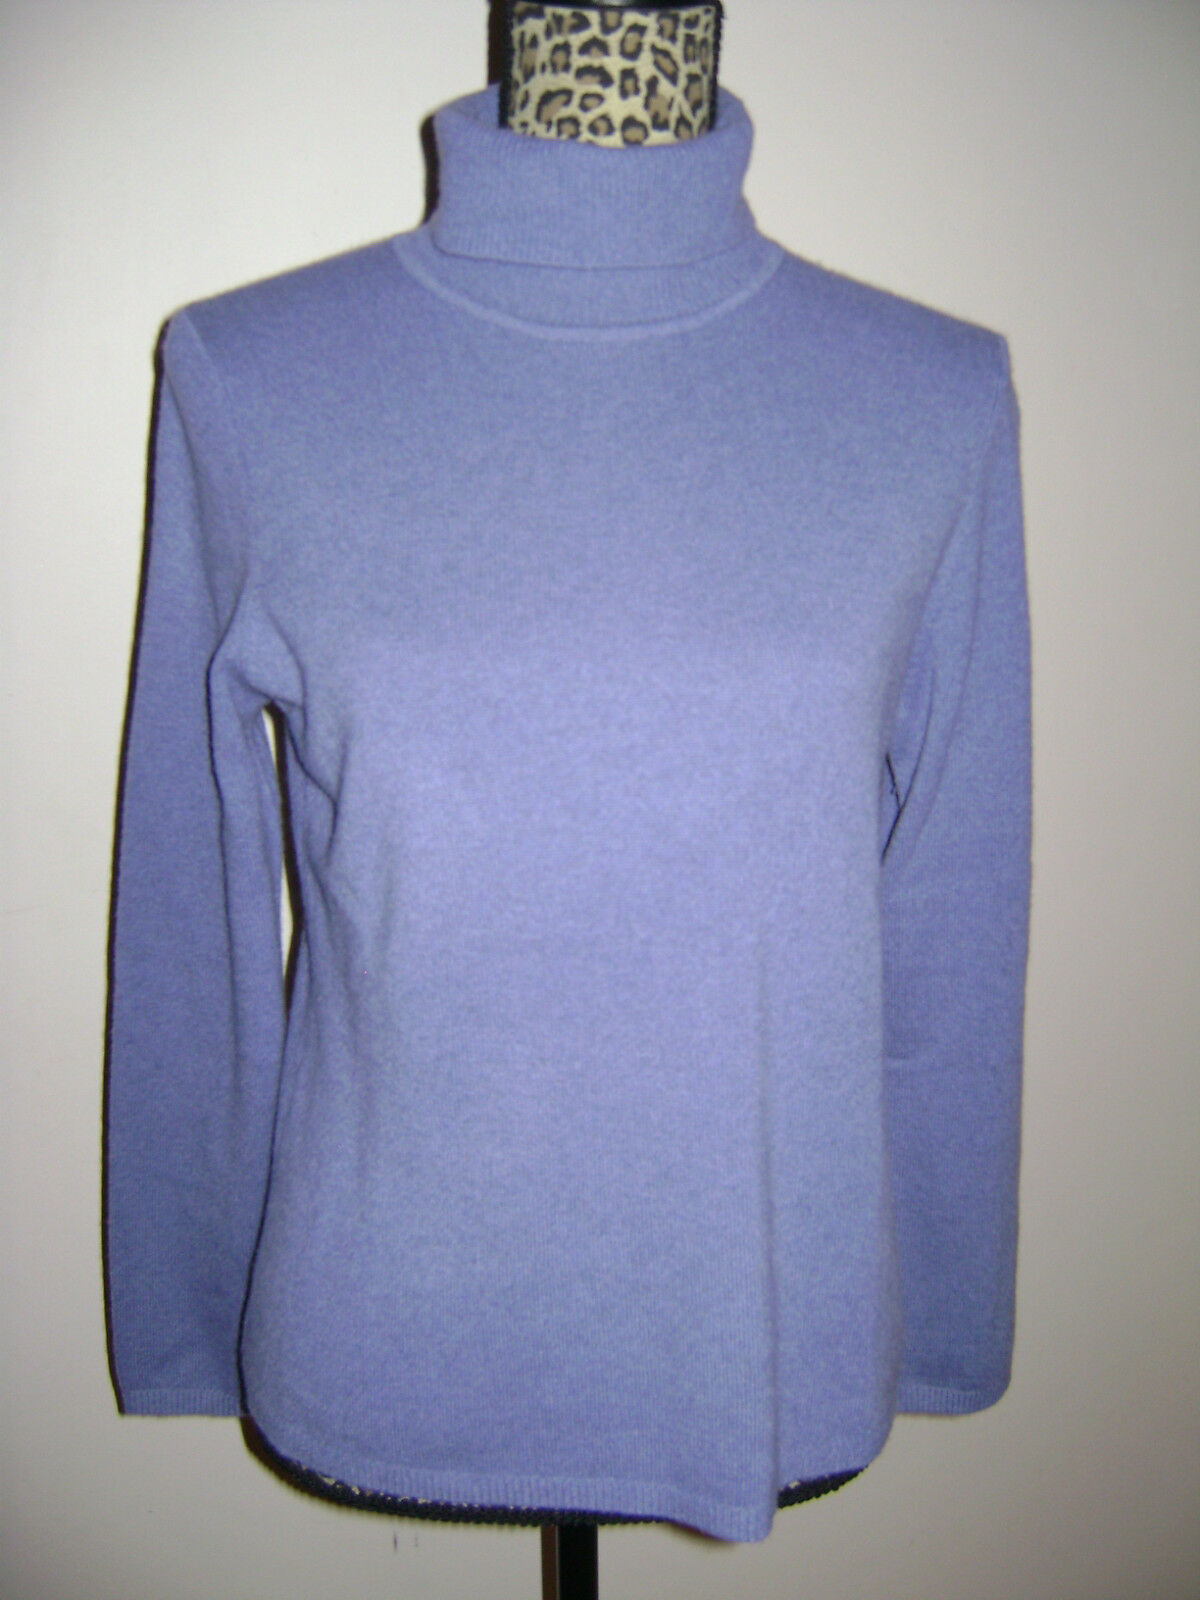 CHARTER CLUB WOMEN SWEATER TOP BLOUSE SHIRT size M PURPLE 2 PLY 100% CASHMERE